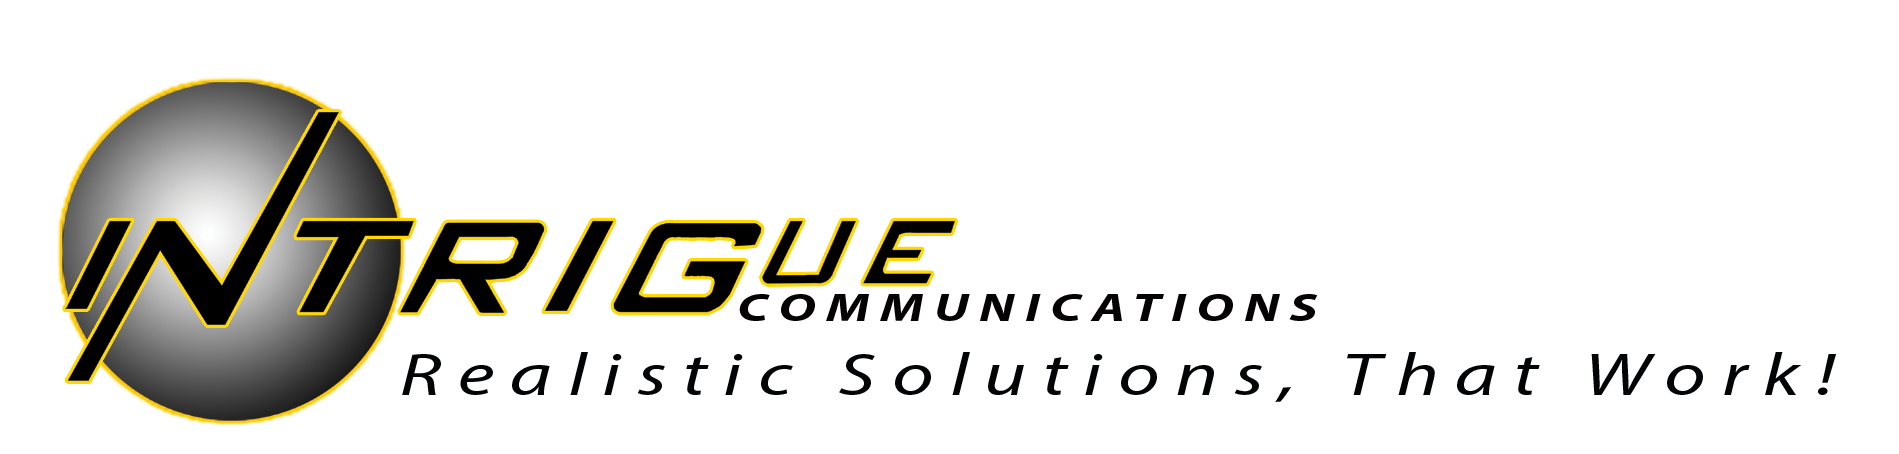 Intrigue Communications